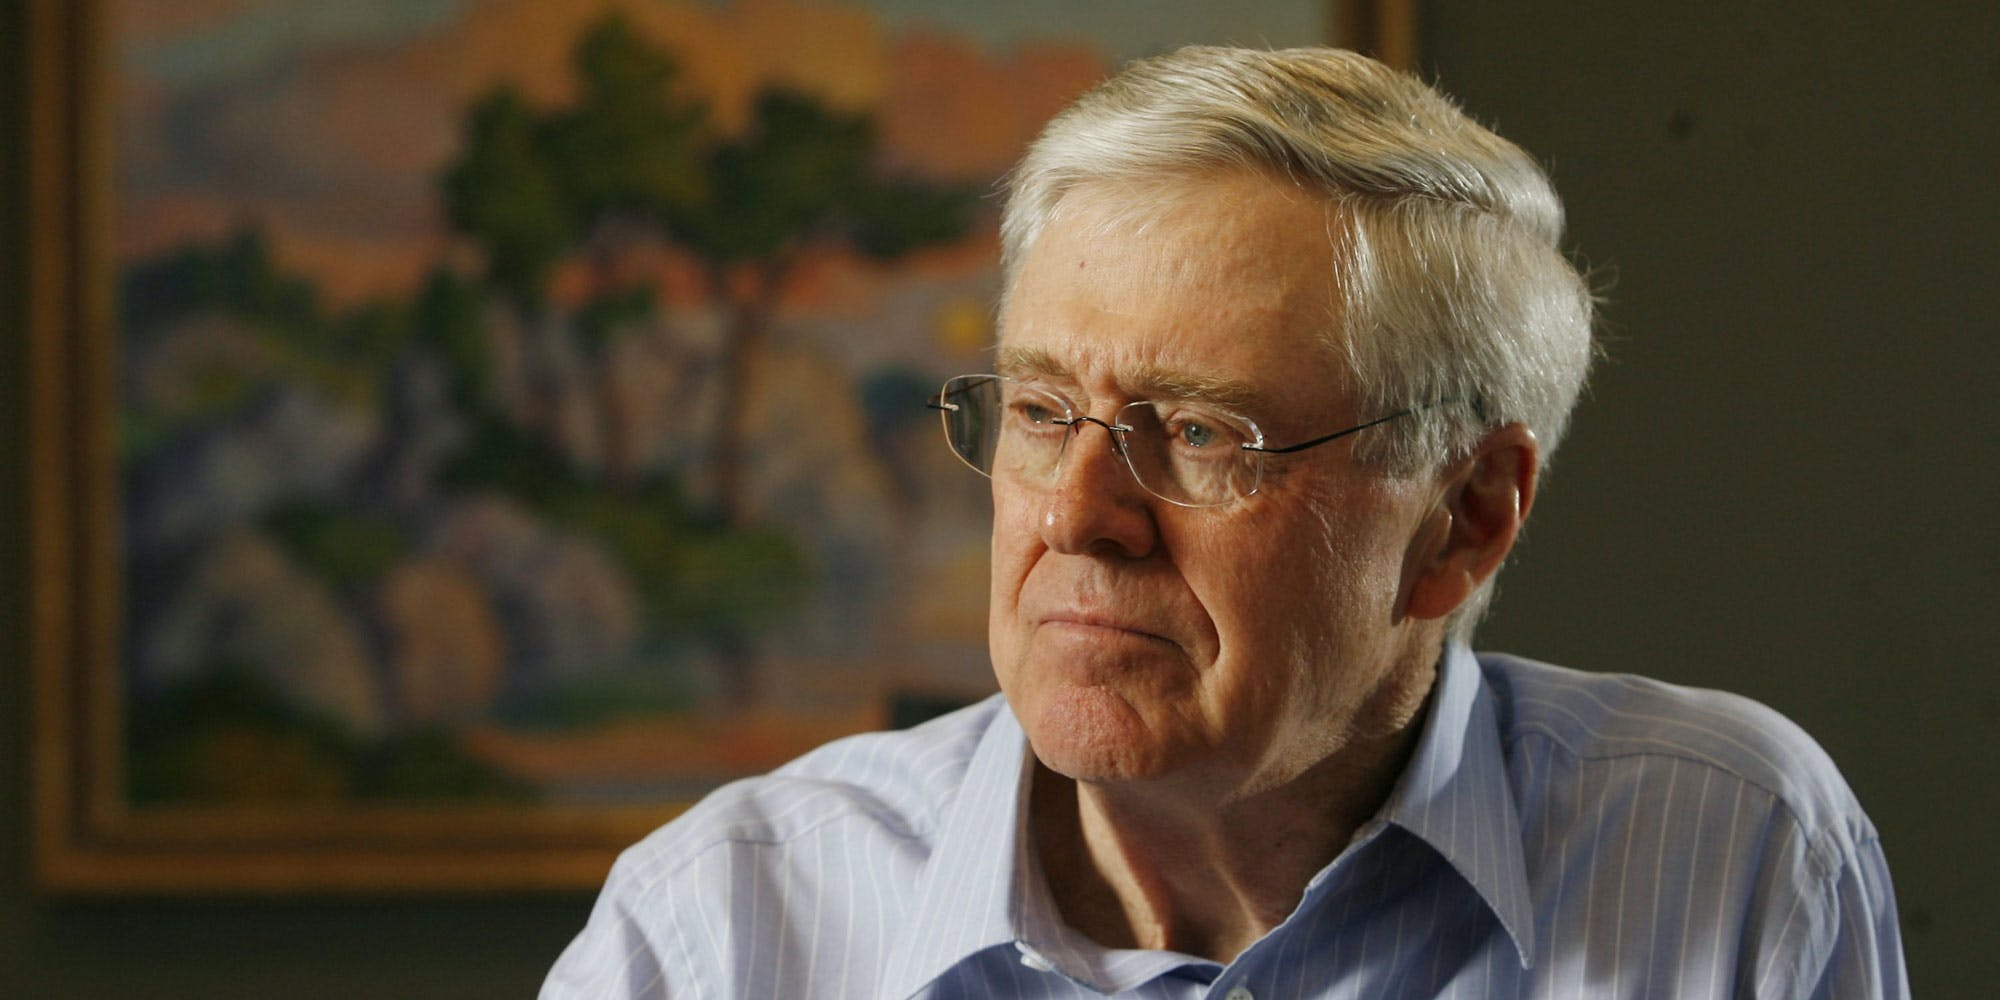 The Koch Brothers Commissioned a Survey of Americans and Found Most Like a $15 Minimum Wage, Free College, and Universal Health Care